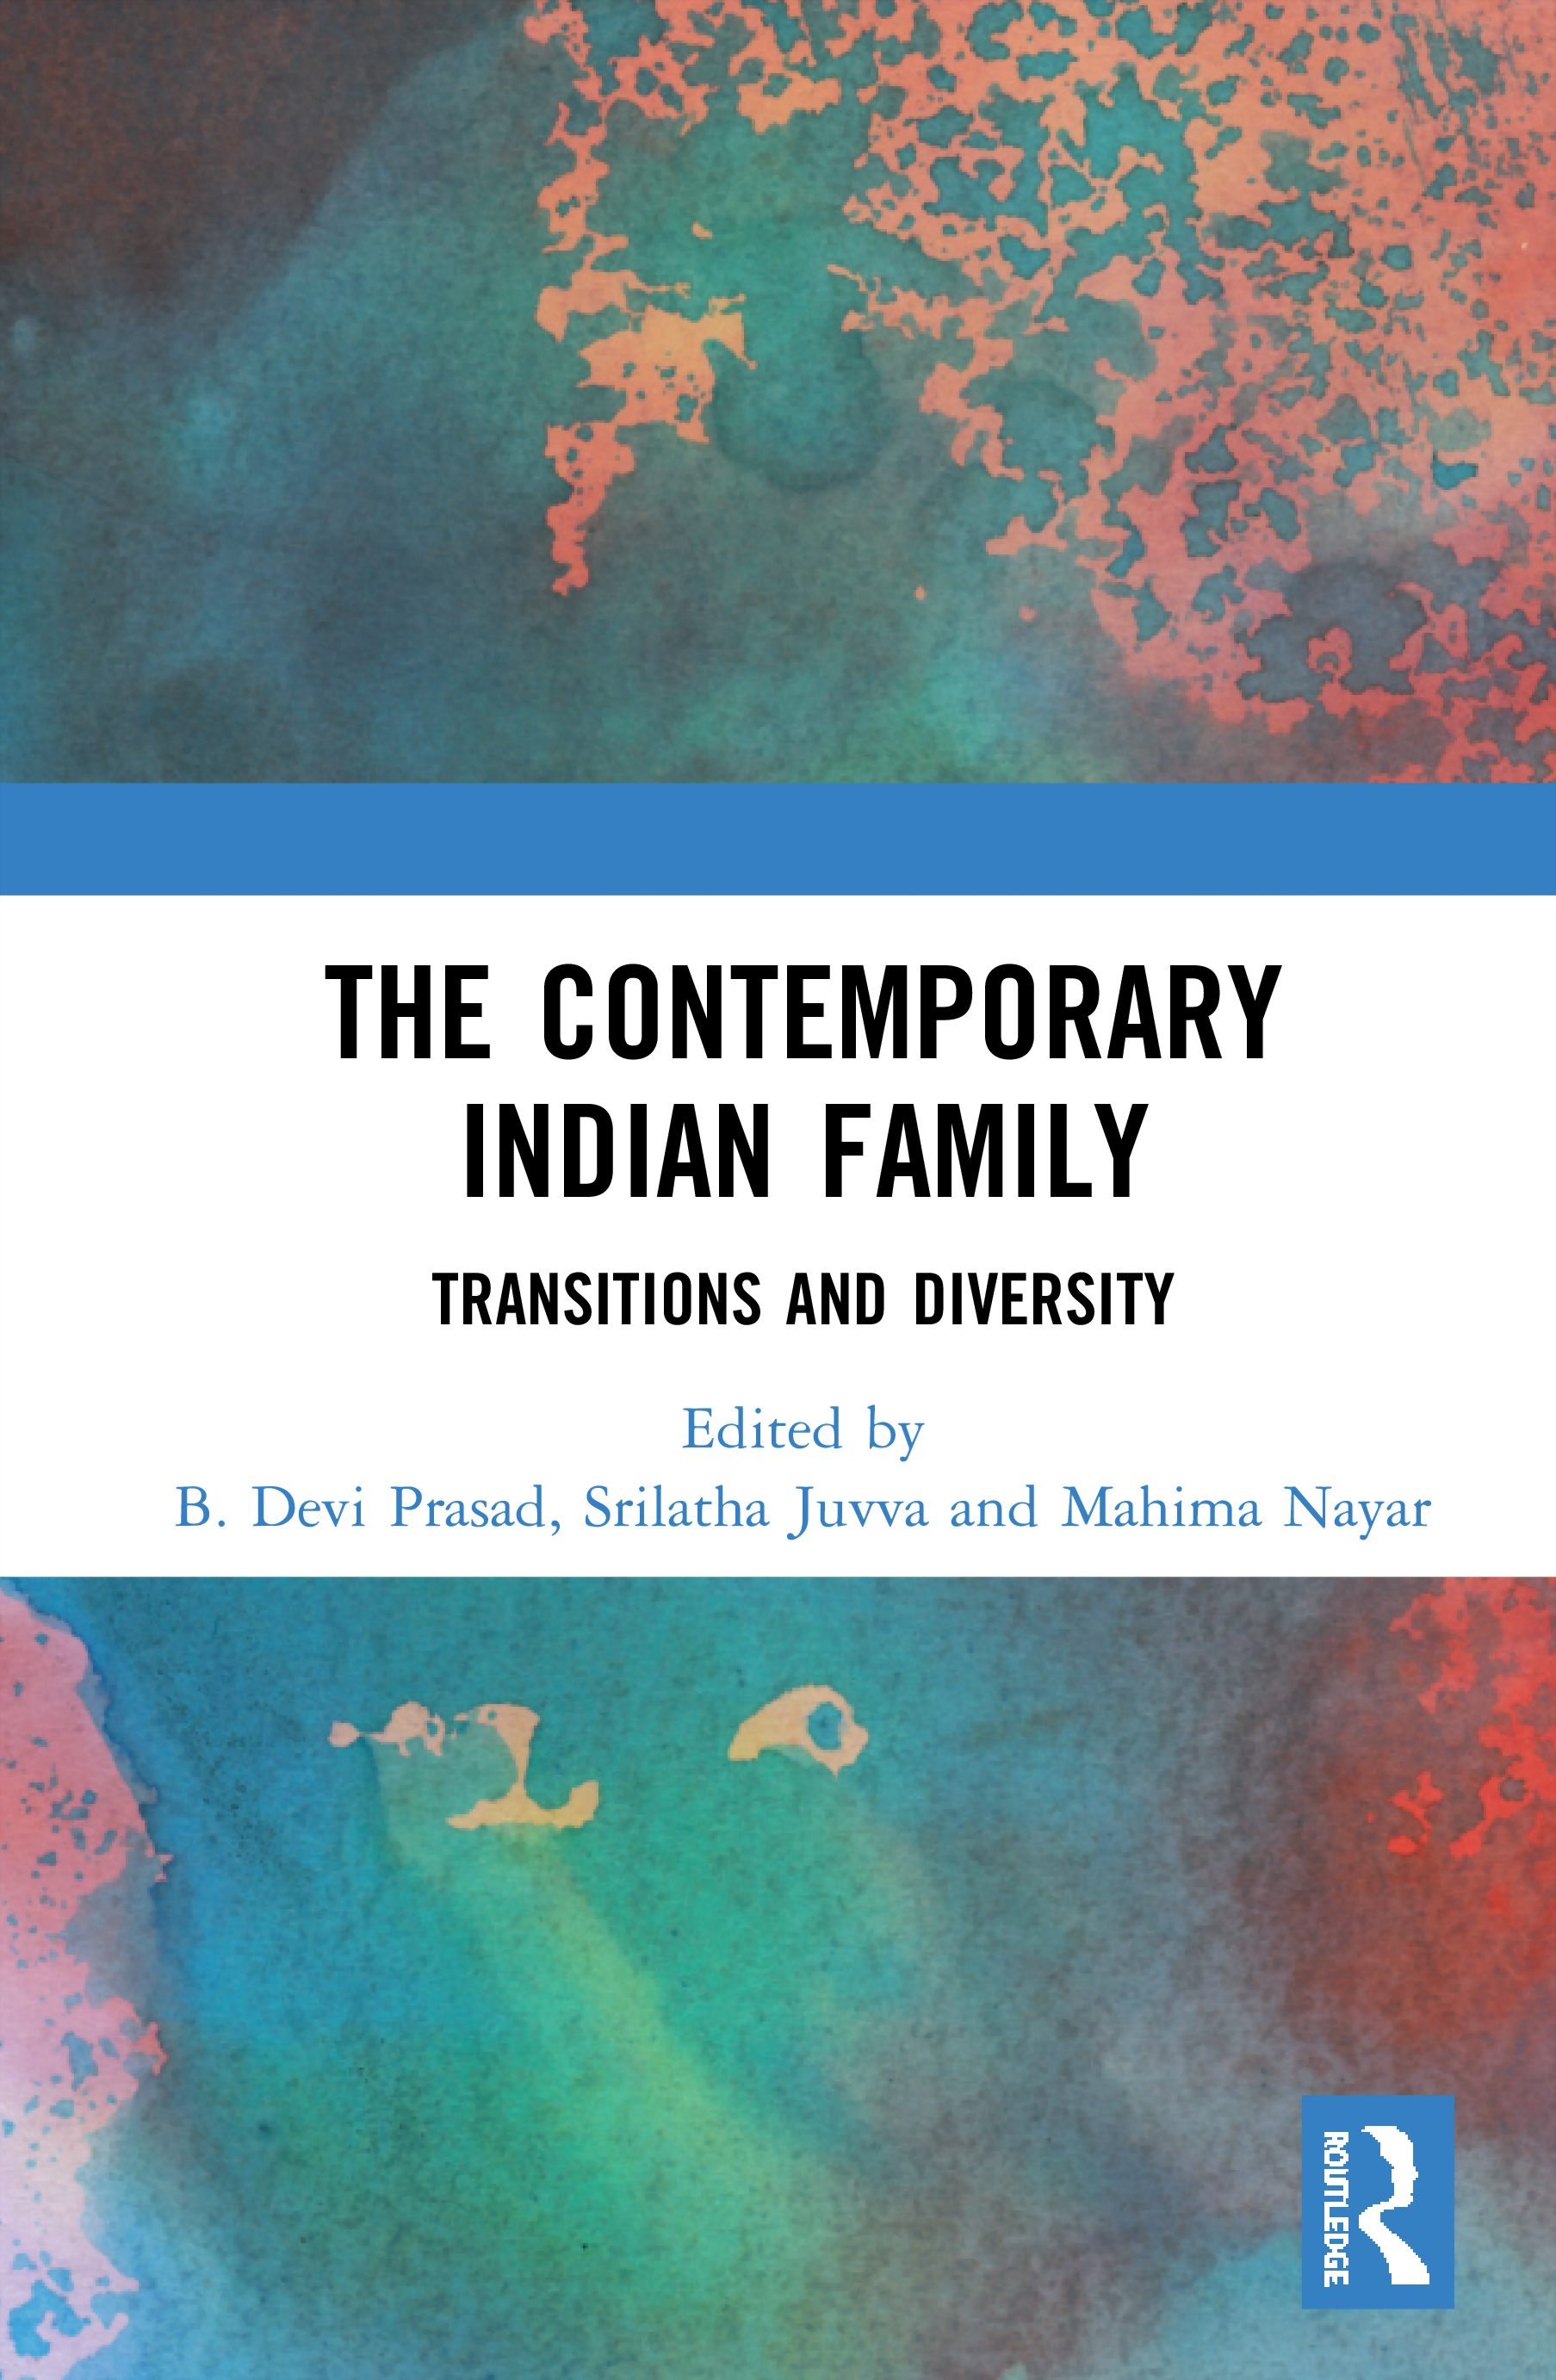 The Contemporary Indian Family: Transitions and Diversity book cover